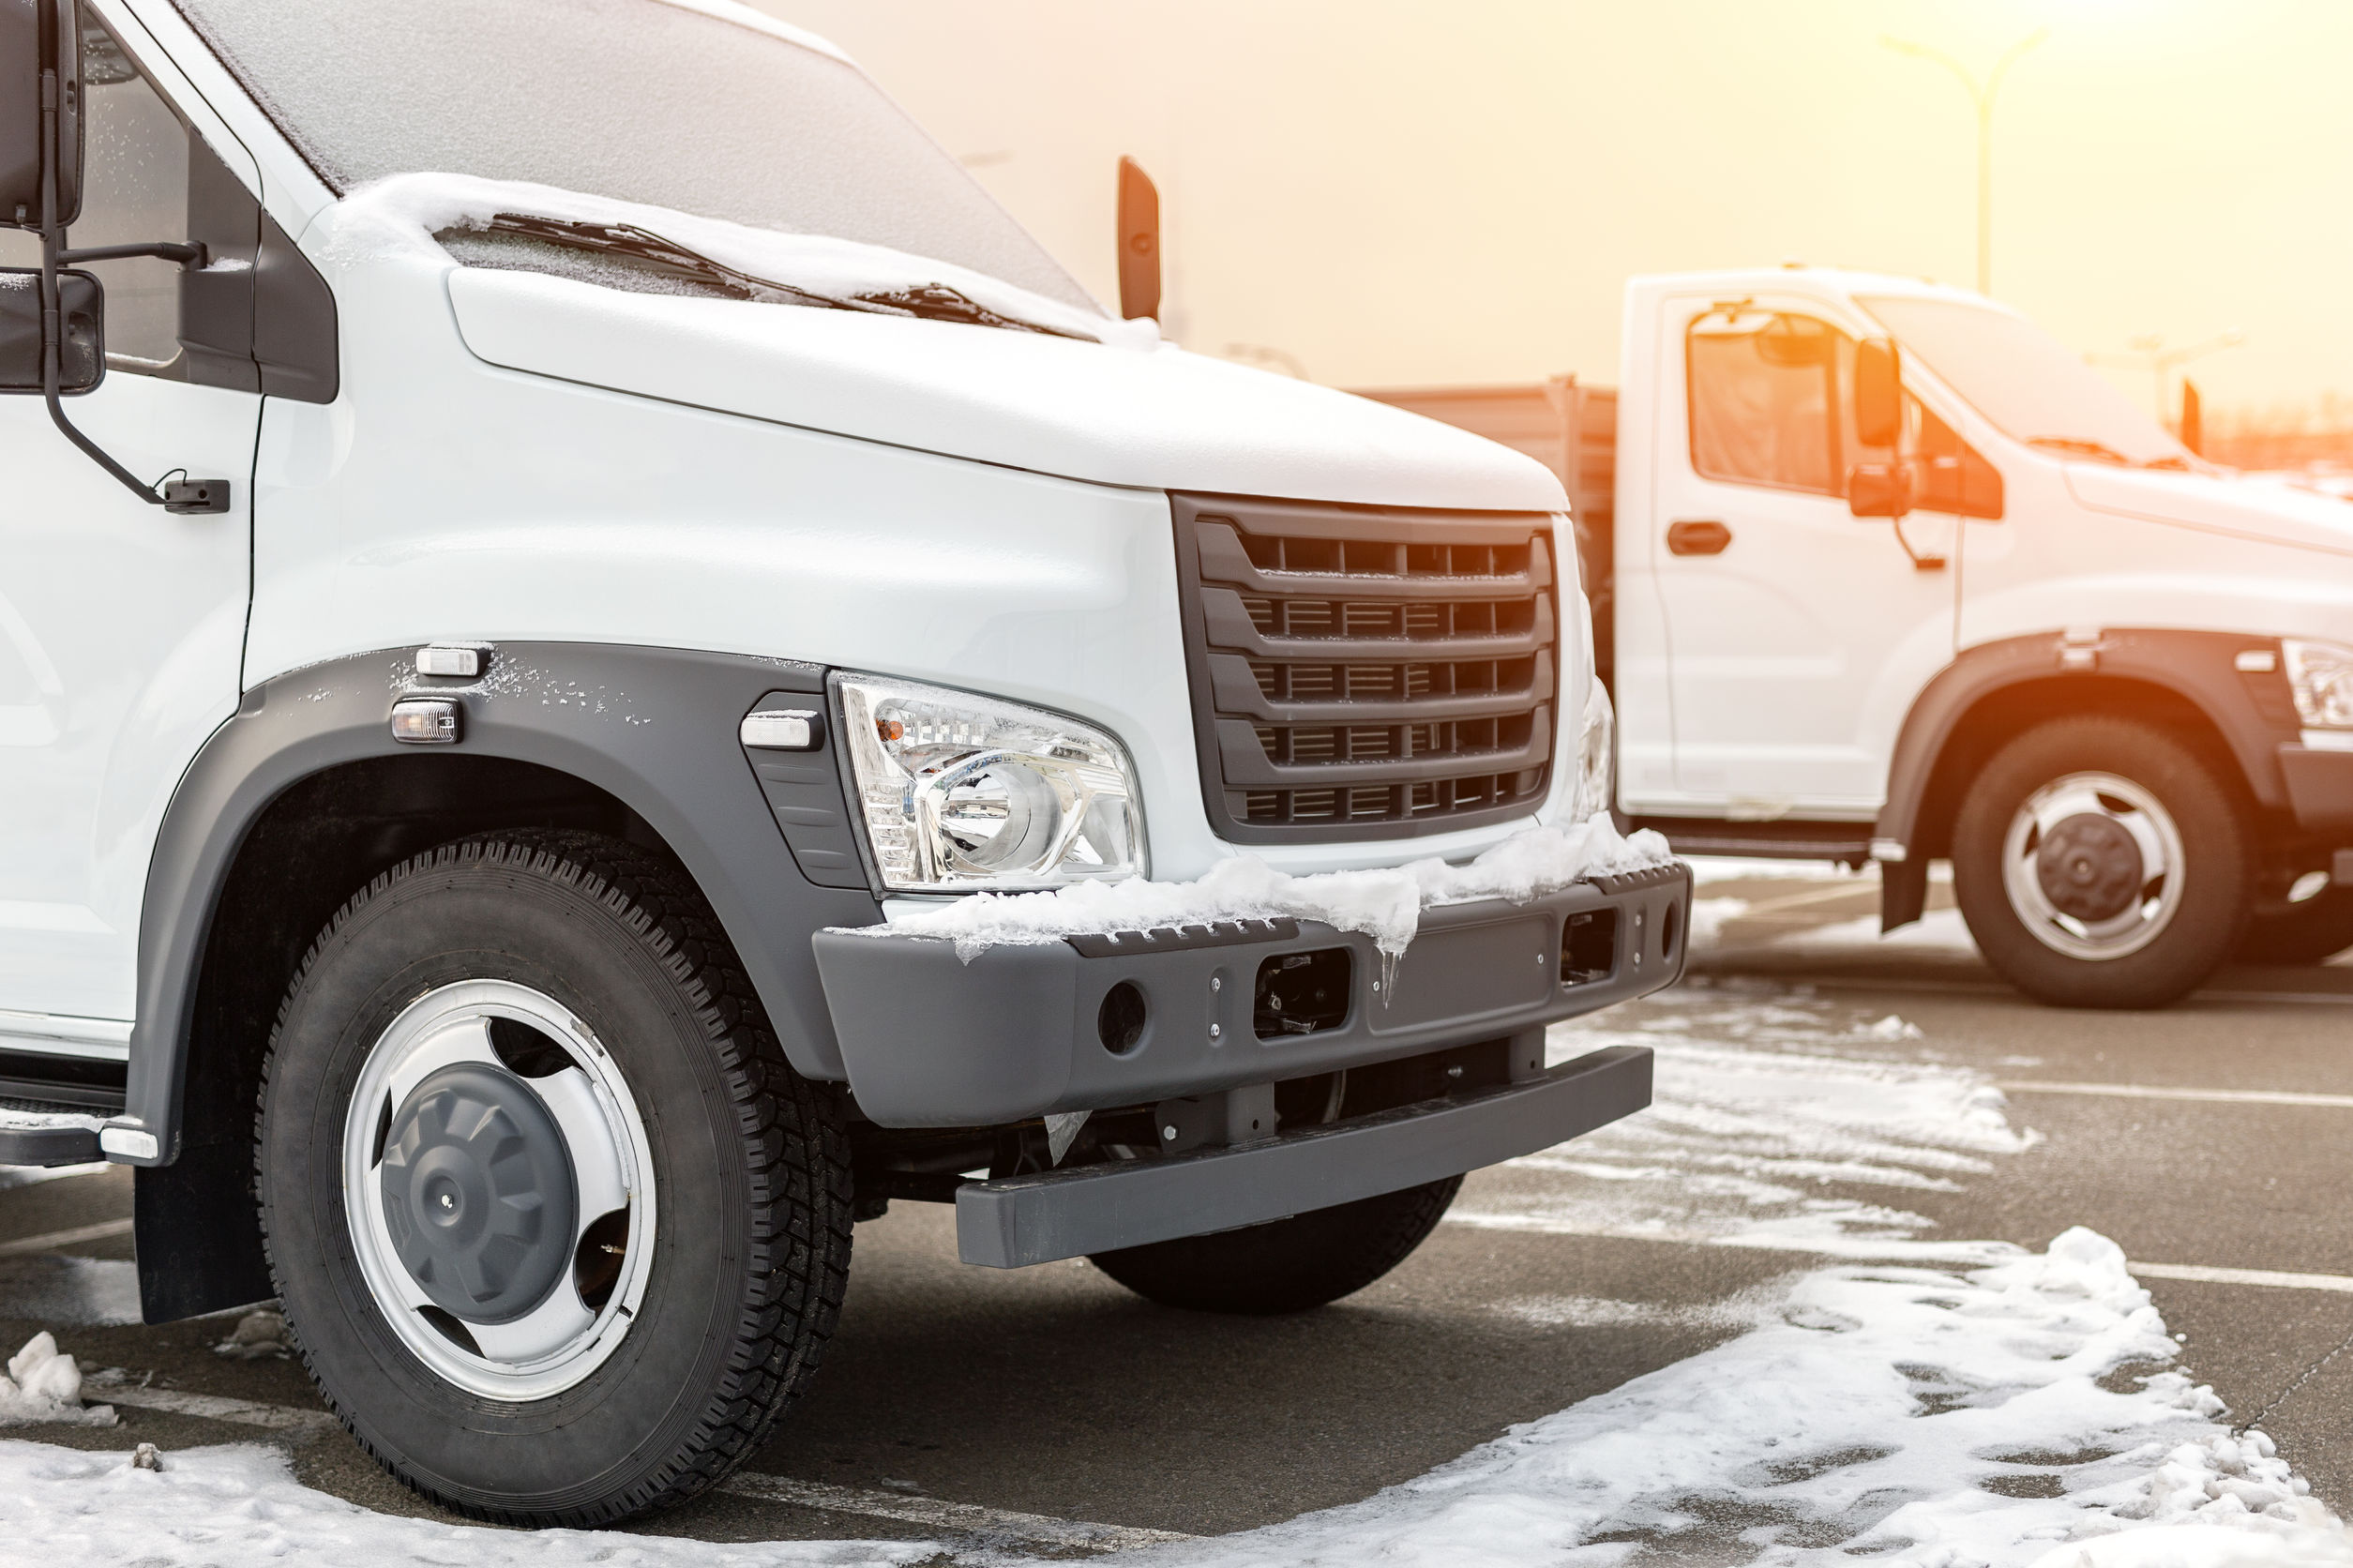 New middle size trucks at dealership parking outdoors at winter. Truck service and maintenance. Delivering and warehouse service.